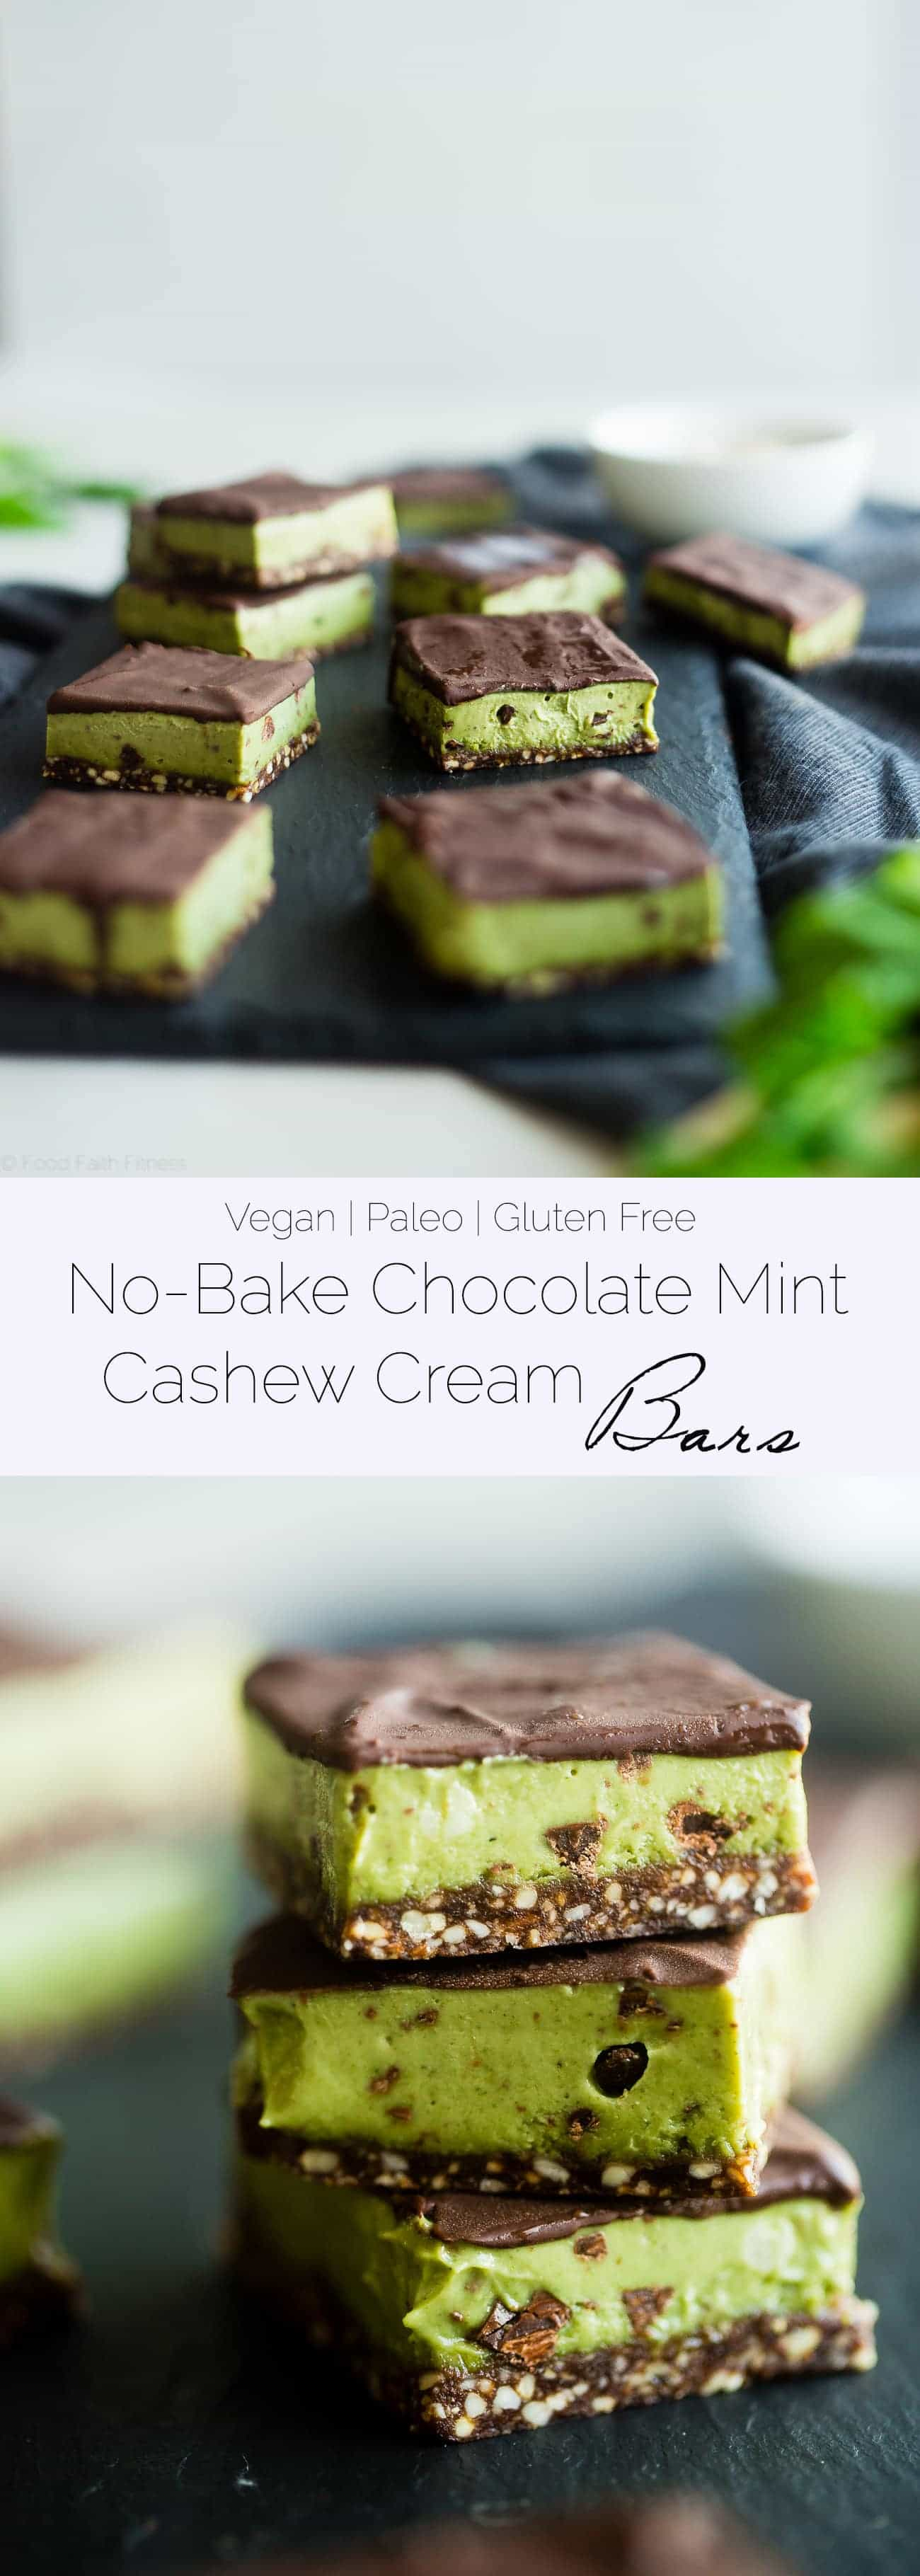 No Bake Mint Chocolate Cashew Cream Bars - These easy mint chocolate cashew cream bars are so creamy and only have 7 ingredients! They're a healthy, vegan and paleo friendly dessert for the holidays! | Foodfaithfitness.com | @FoodFaithFit